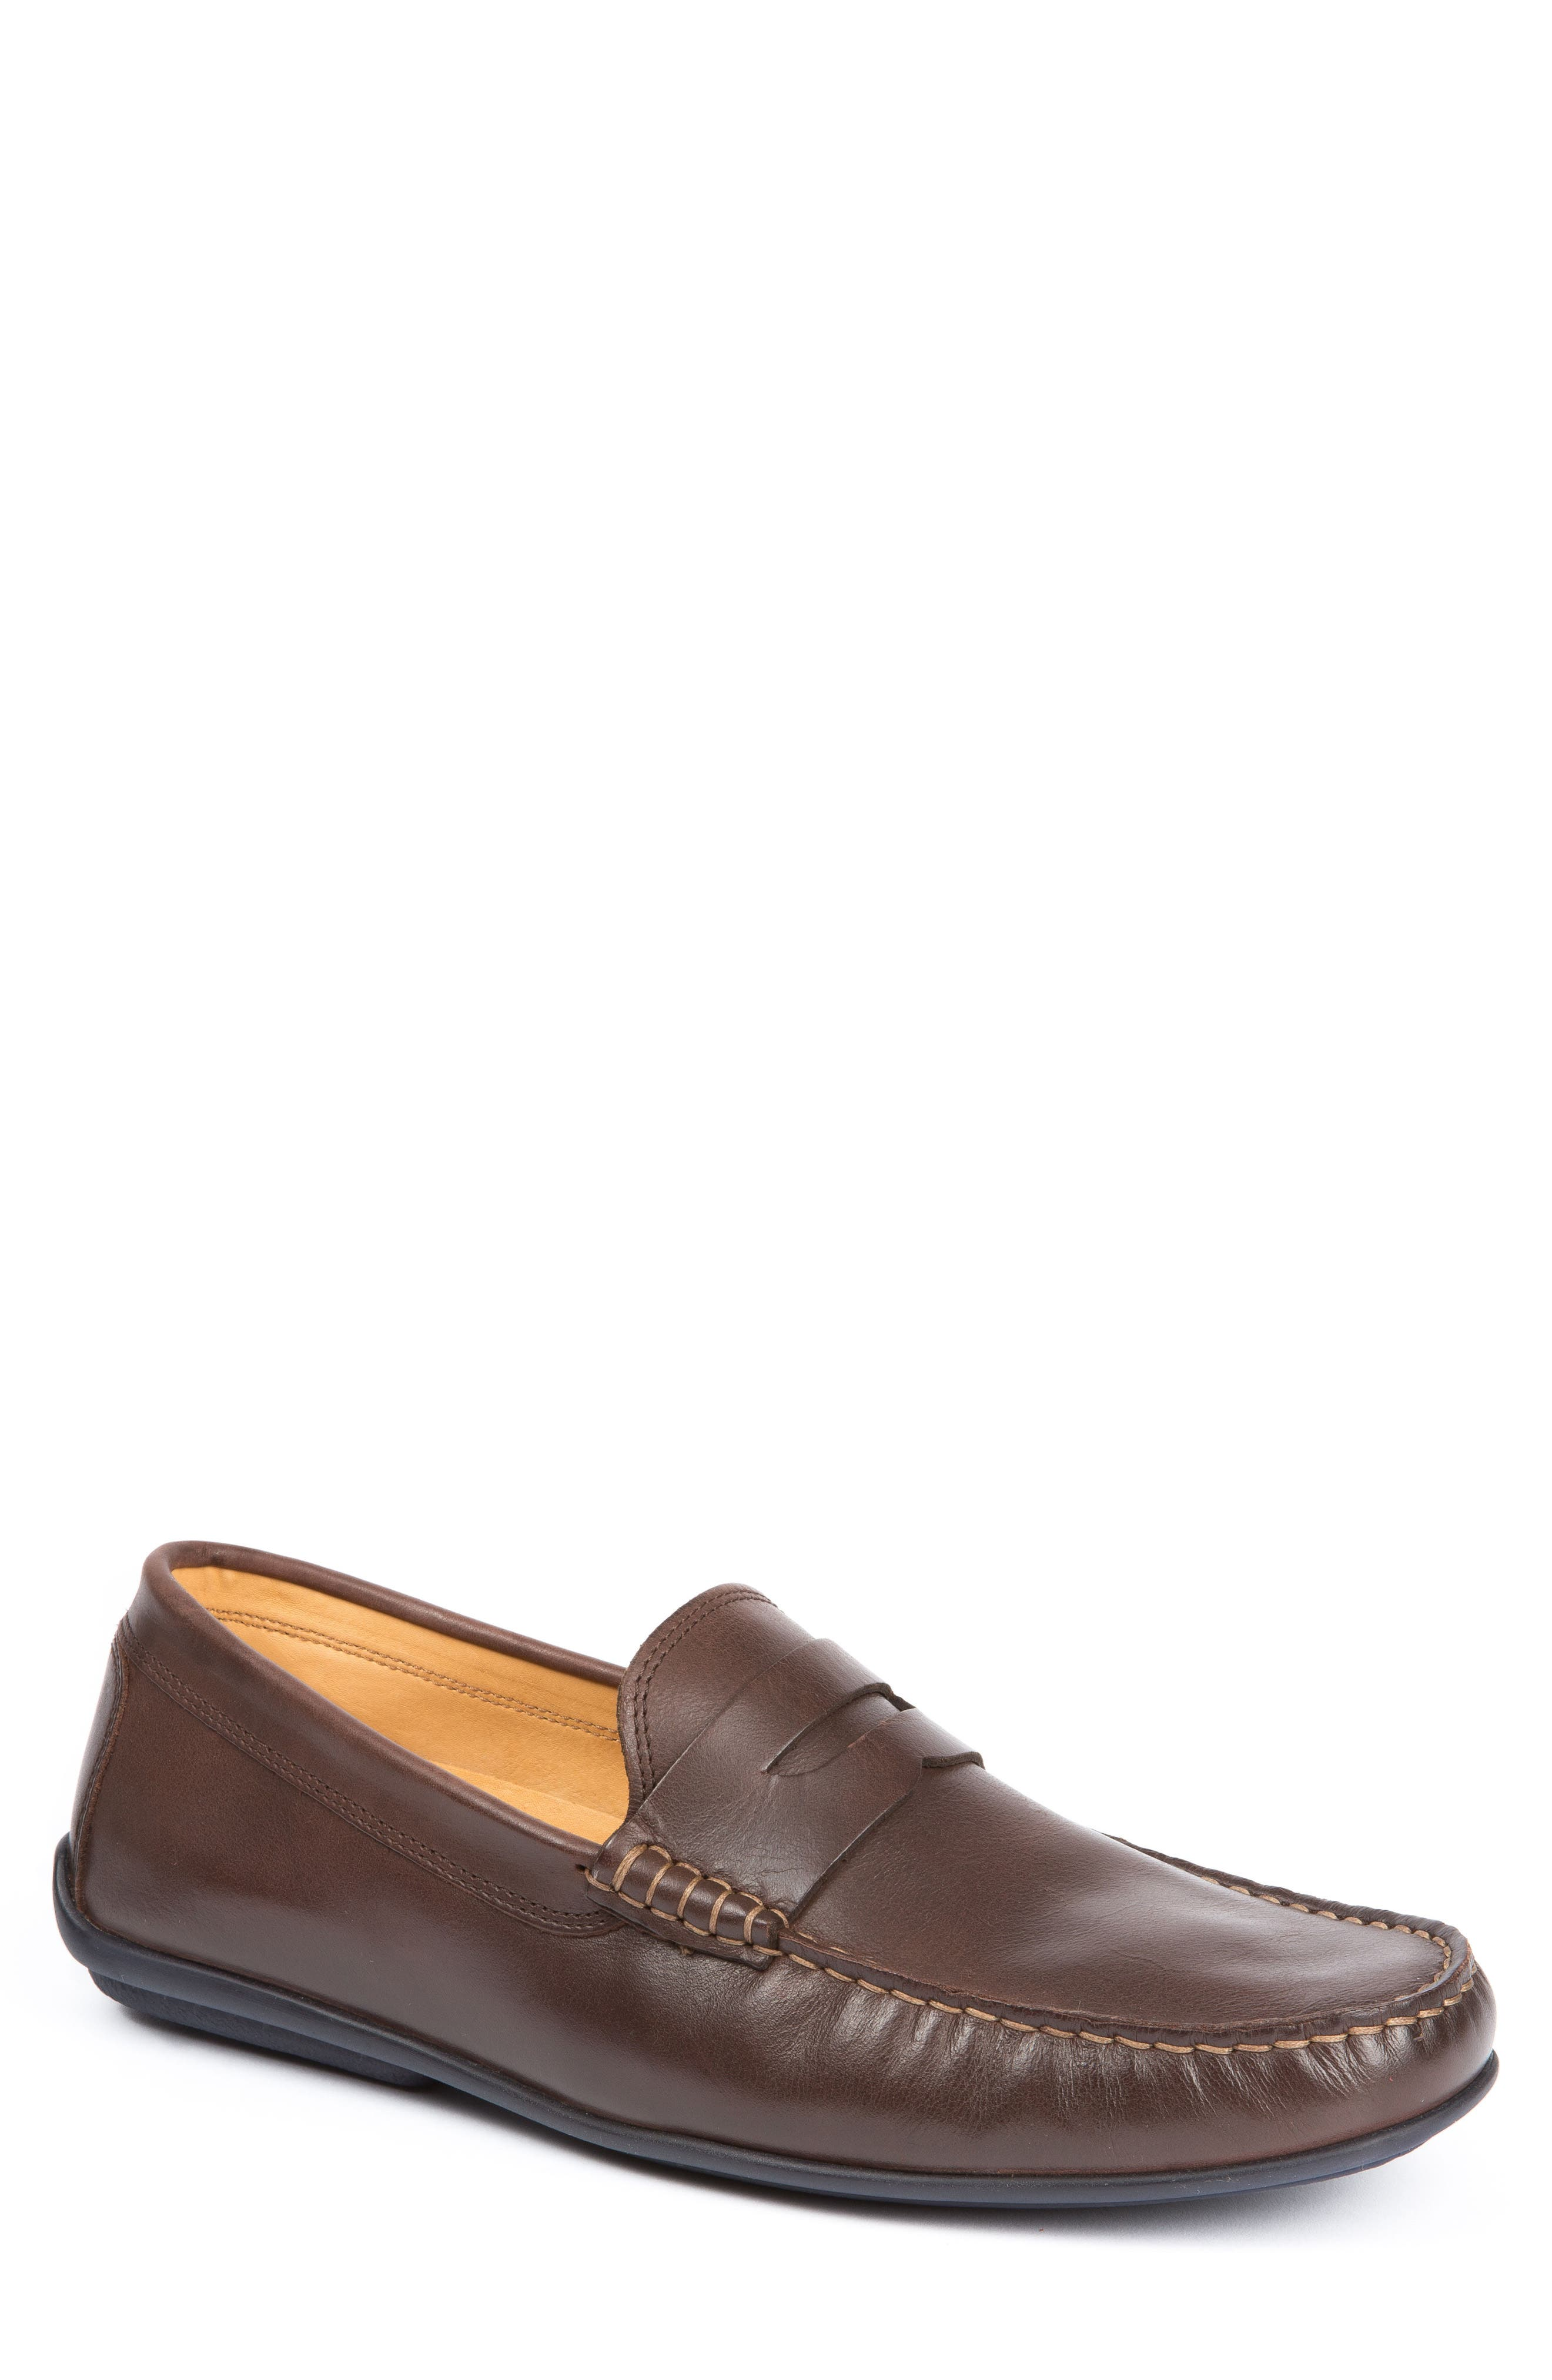 'Strattons' Driving Shoe,                             Main thumbnail 1, color,                             BROWN LEATHER/ NAVY